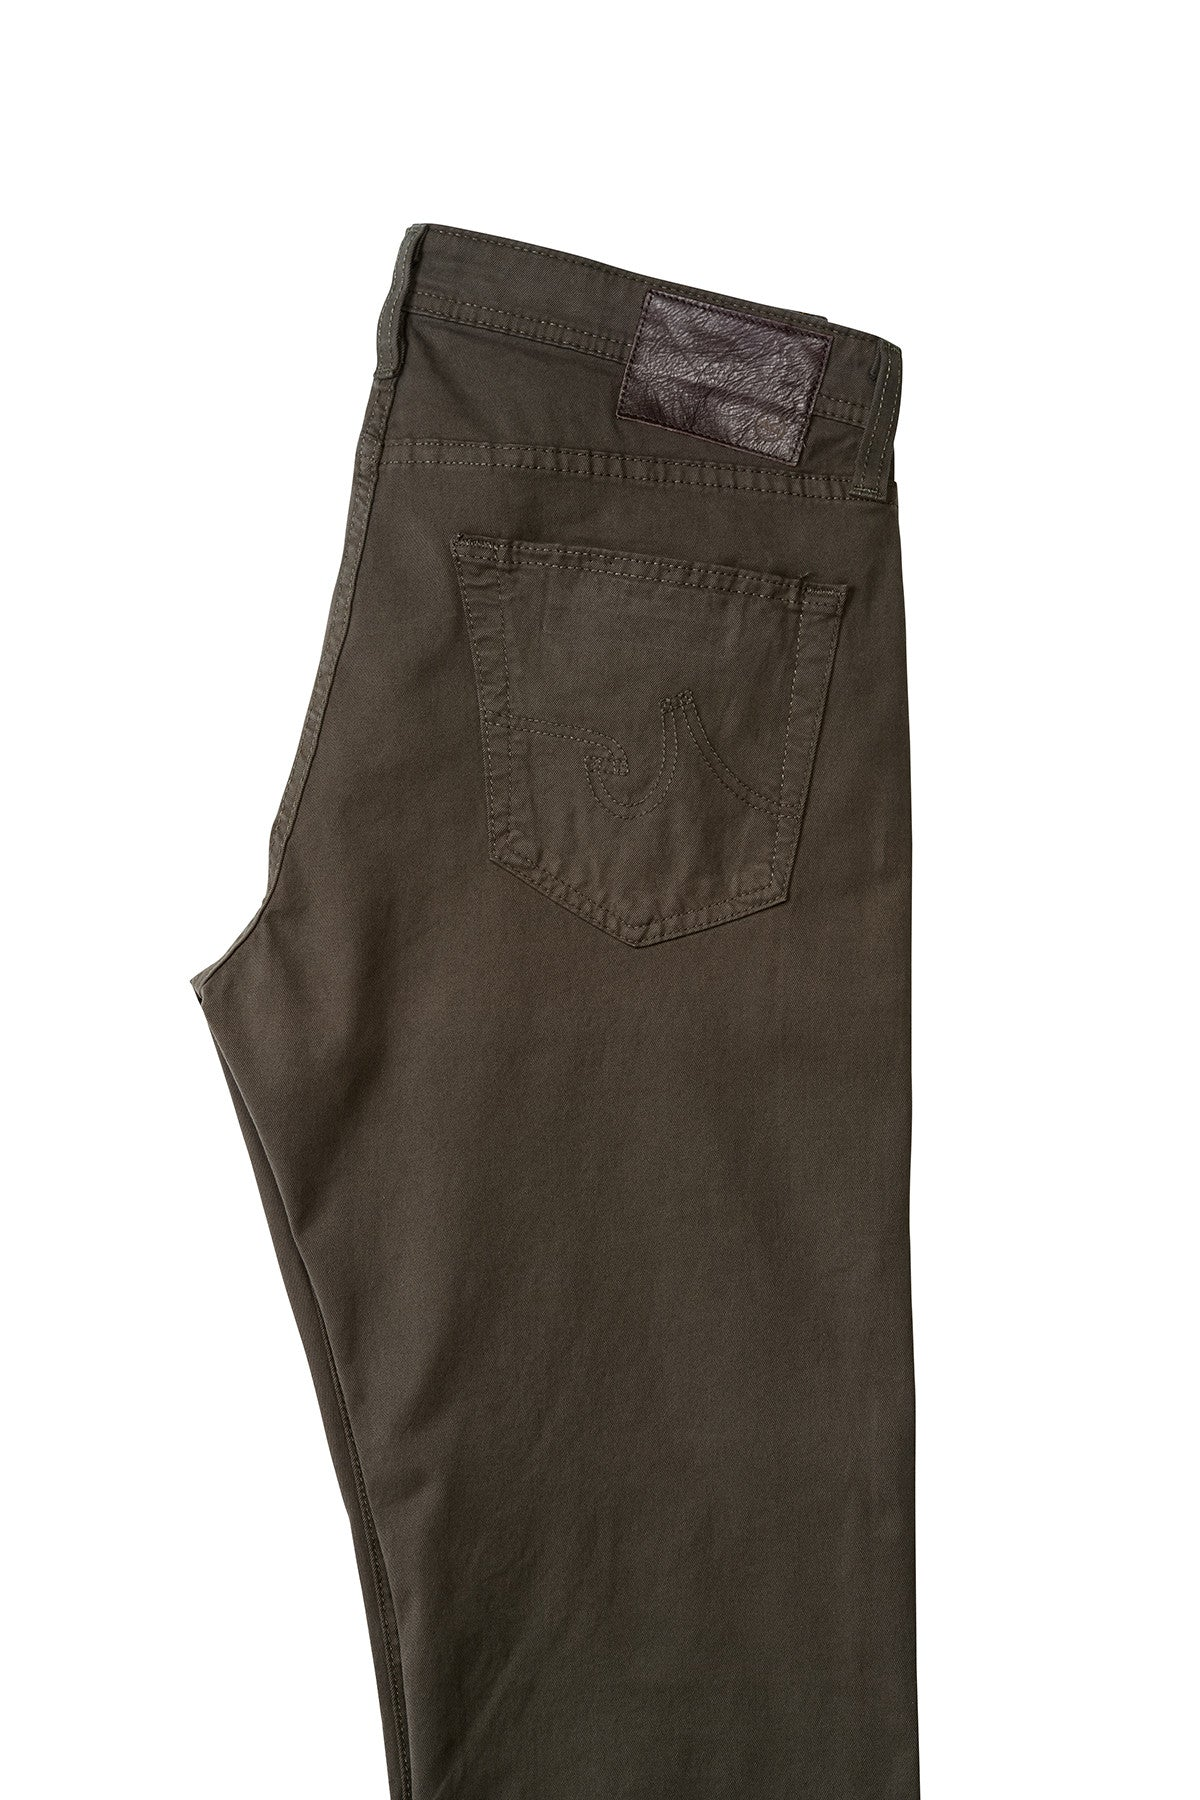 AG  'Matchbox' Slim Fit Jeans in Army Green